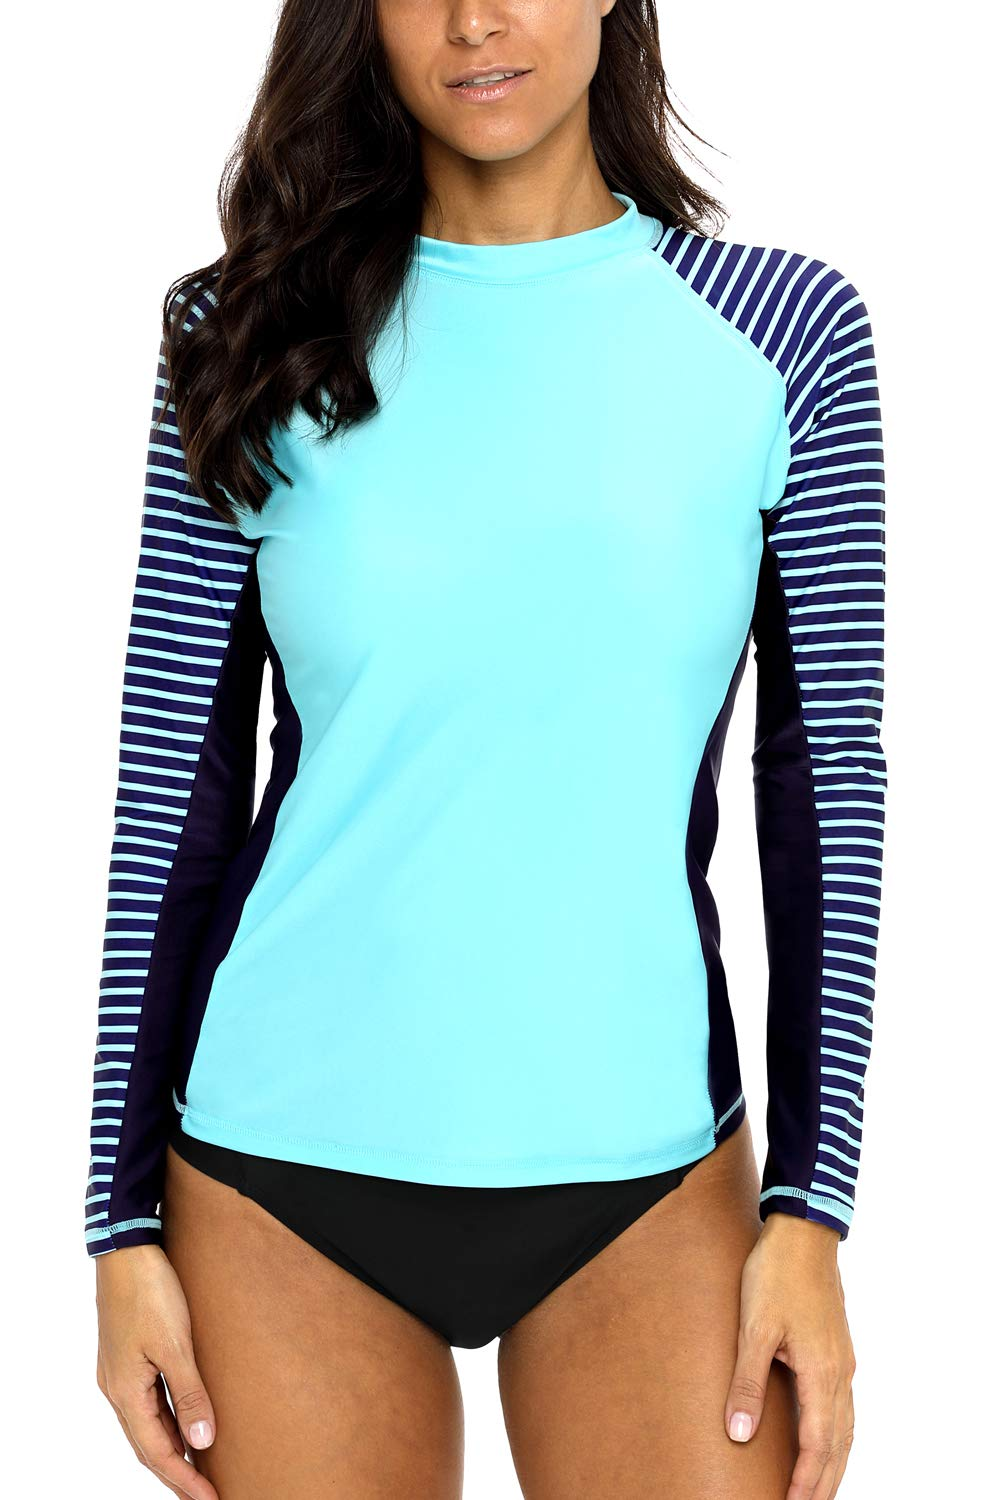 CharmLeaks Women's UV Sun Protection Rash Guard Long Sleeve Swimsuit Top Wetsuit Large by CharmLeaks